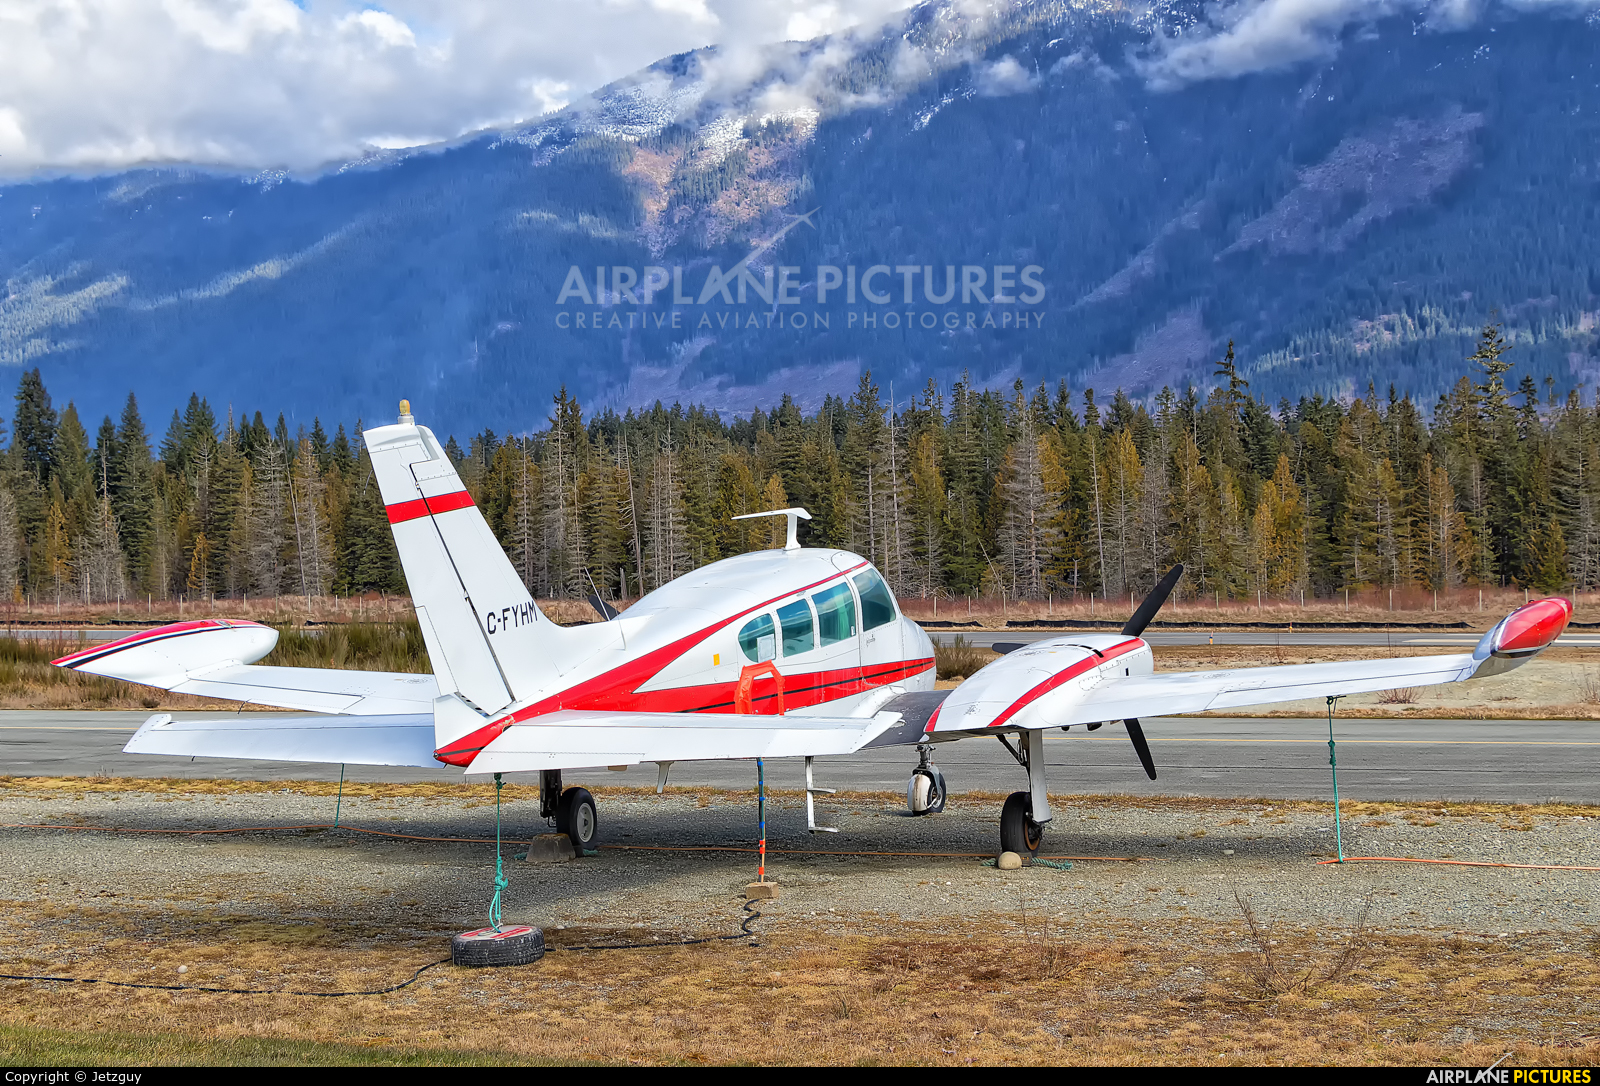 Private C-FYHM aircraft at Port Alberni, BC